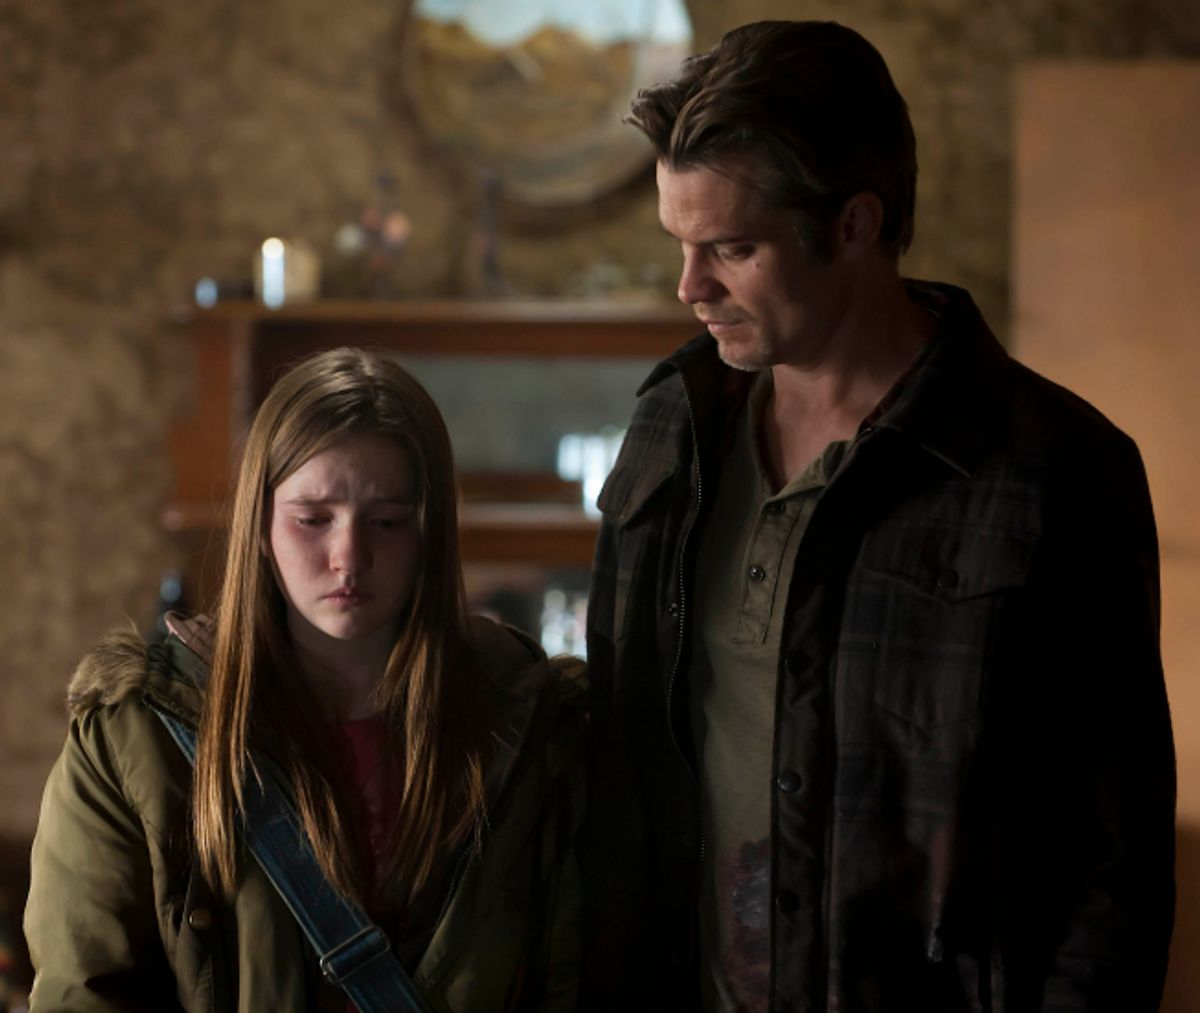 JUSTIFIED: L-R: Kaitlyn Dever and Timothy Olyphant in JUSTIFIED airing Wednesday, May 4 (10:00 PM ET/PT) on FX. CR: Prashant Gupta / FX